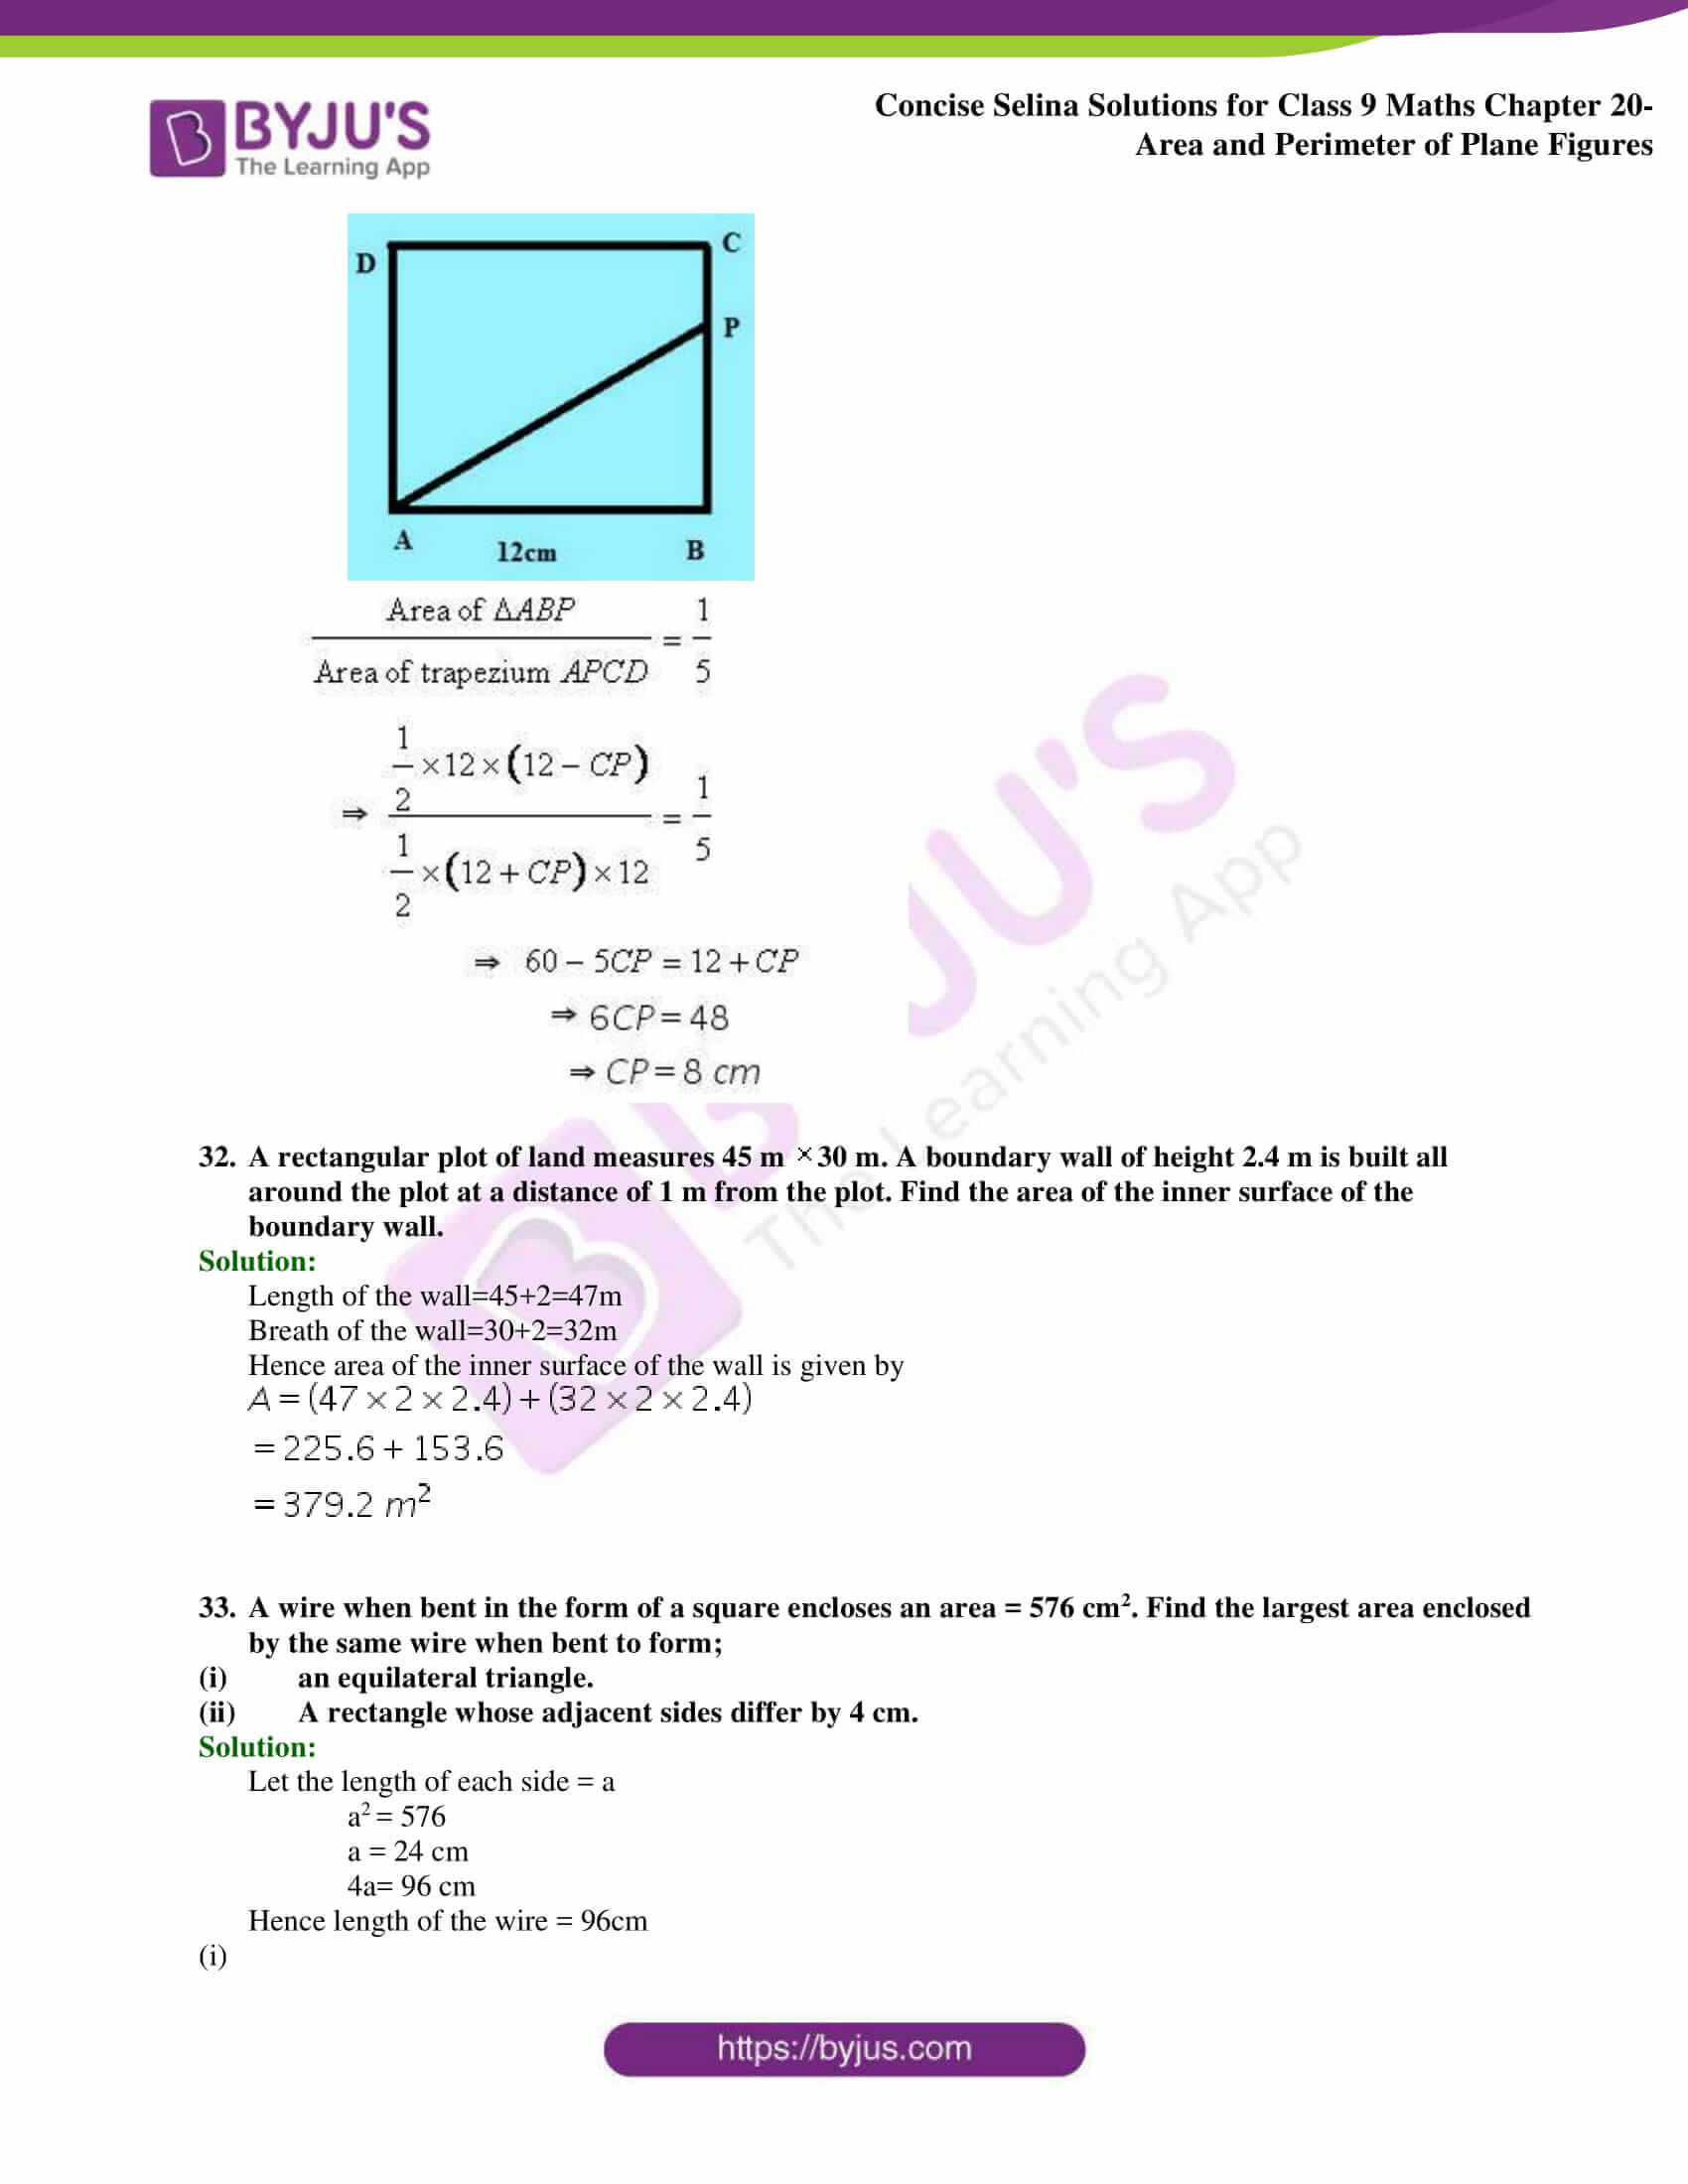 Concise Selina Solutions Class 9 Maths Chapter 20 Area and Perimeter of Plane part 30